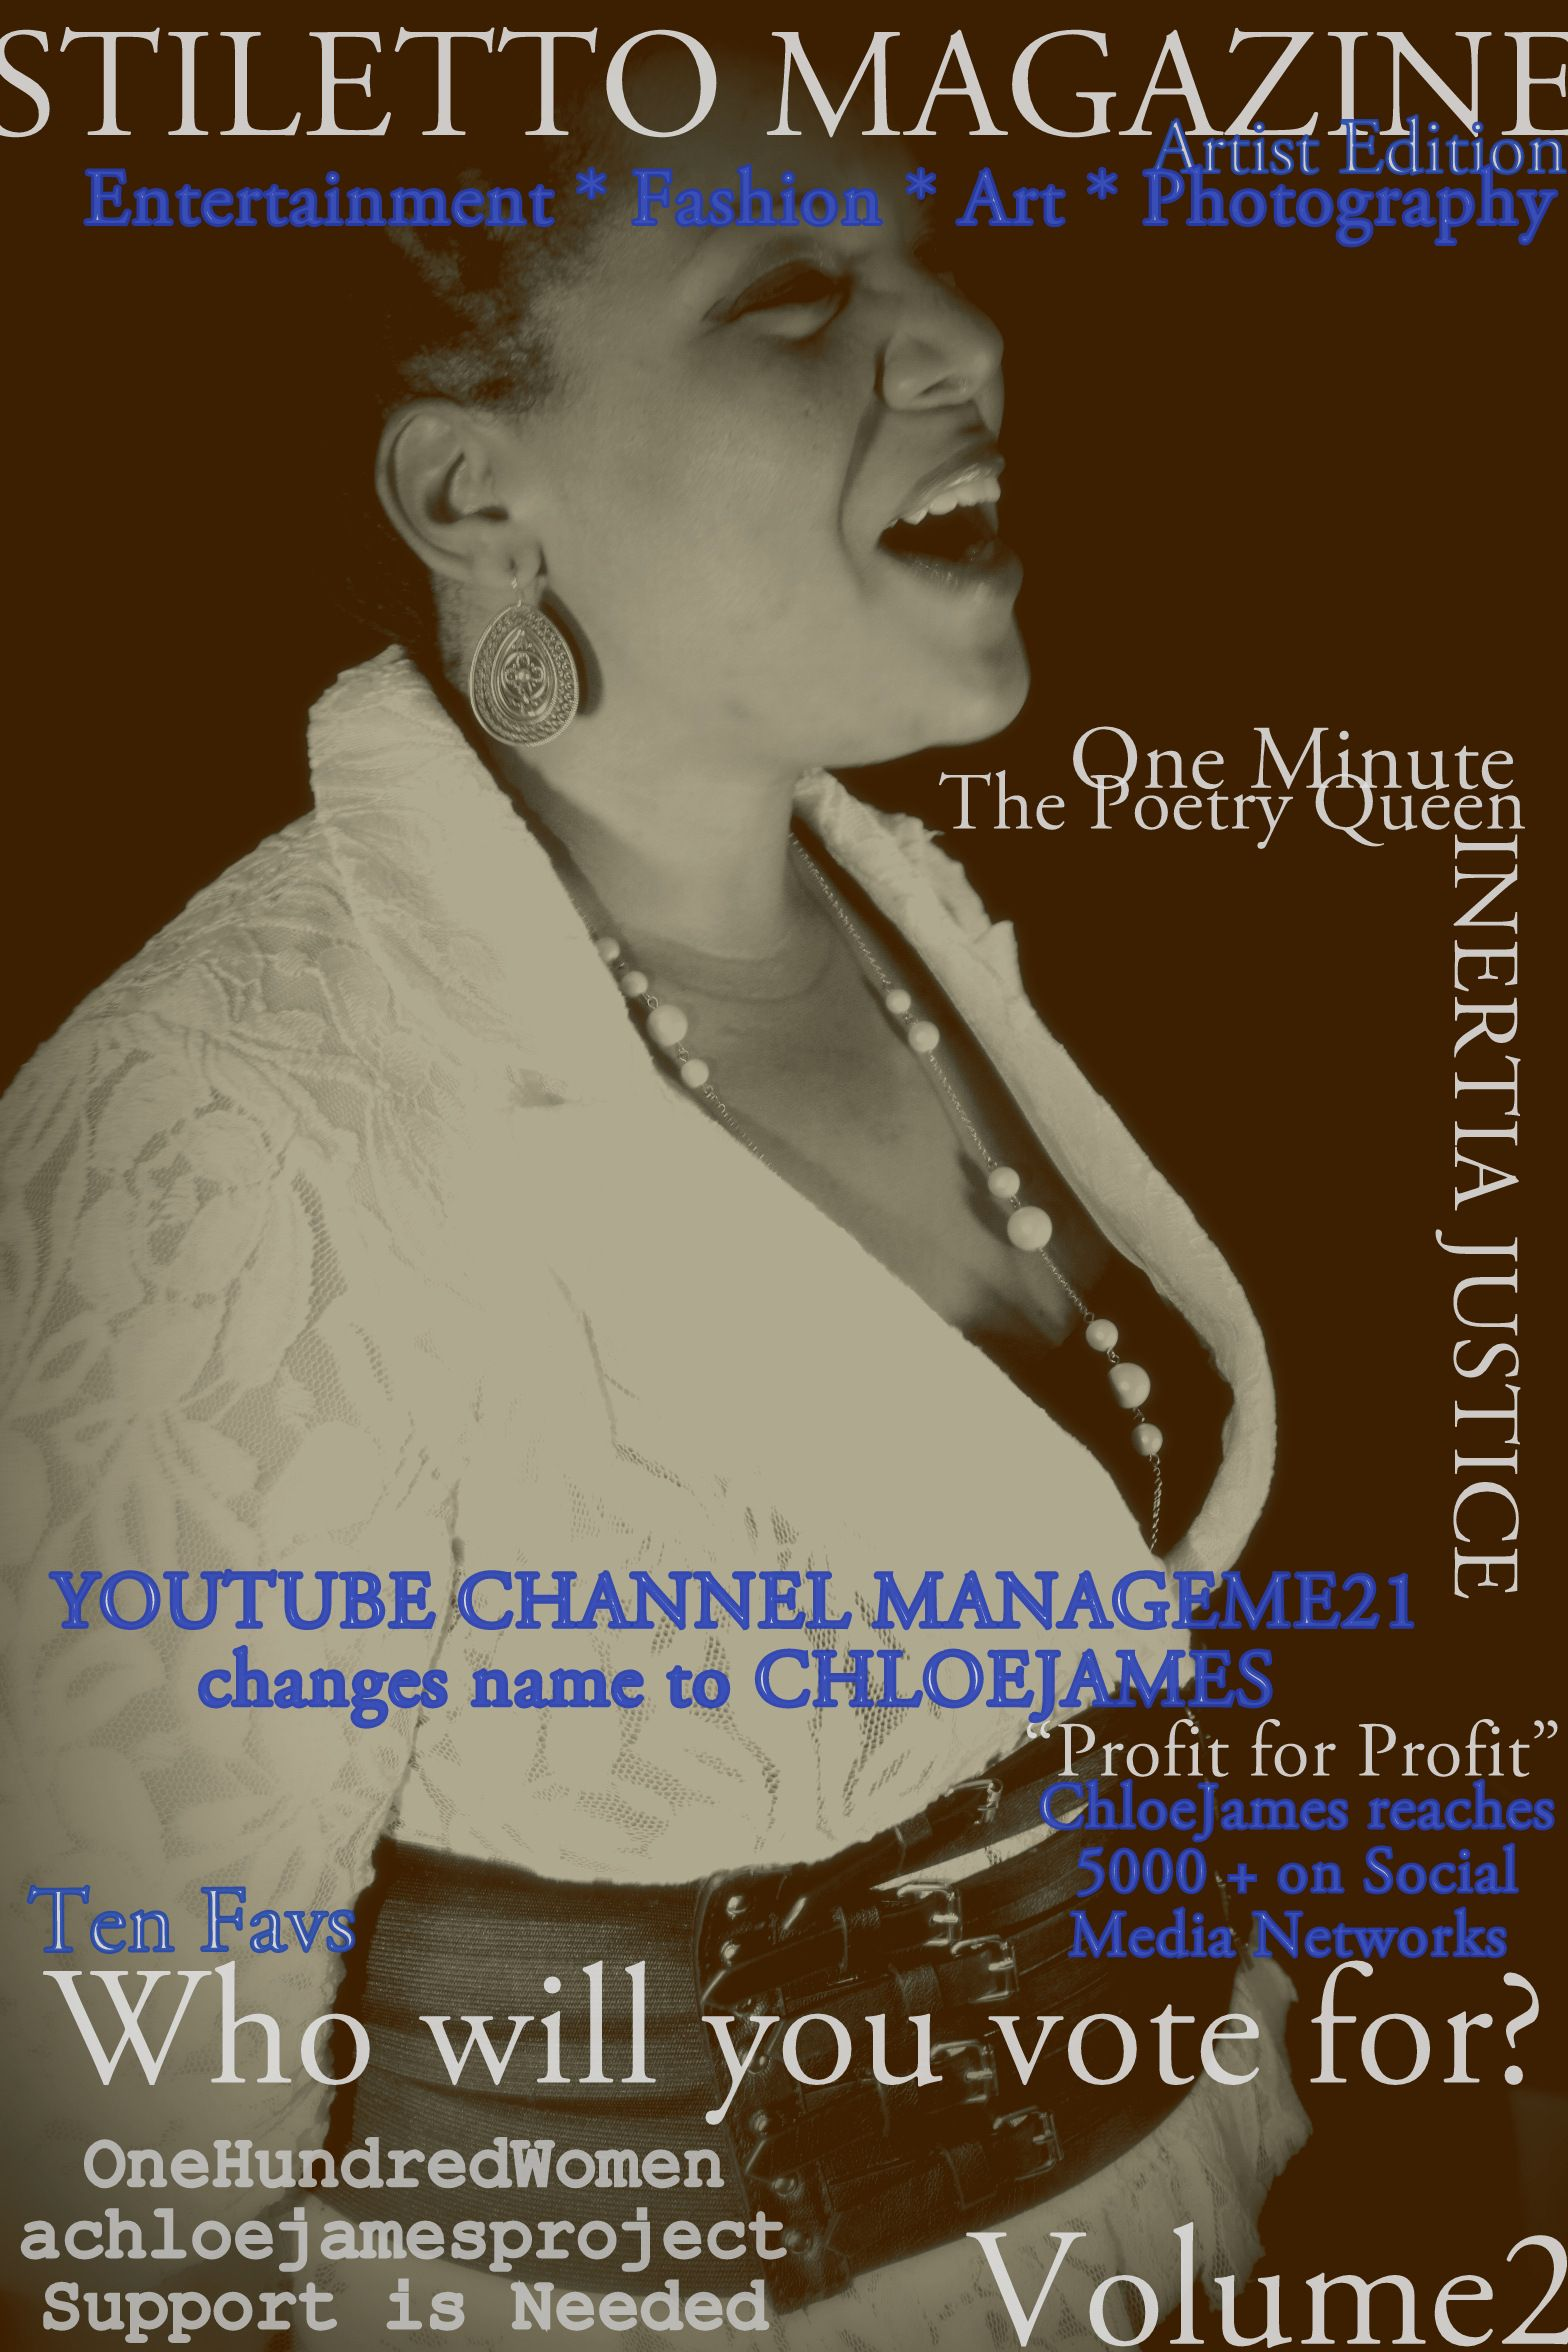 Preview Issue of Upcoming Stiletto Magazine with Houstons' Poetry Queen, Inertia Justice. She's more than an artist, her non profit organization Baby Girl, Inc is raising local and national awareness. Stay tuned for more of the interview...One Minute     Visit www.chloejamesphotos.blogspot.com for more photos.   Followme @IAMCHLOEJAMES